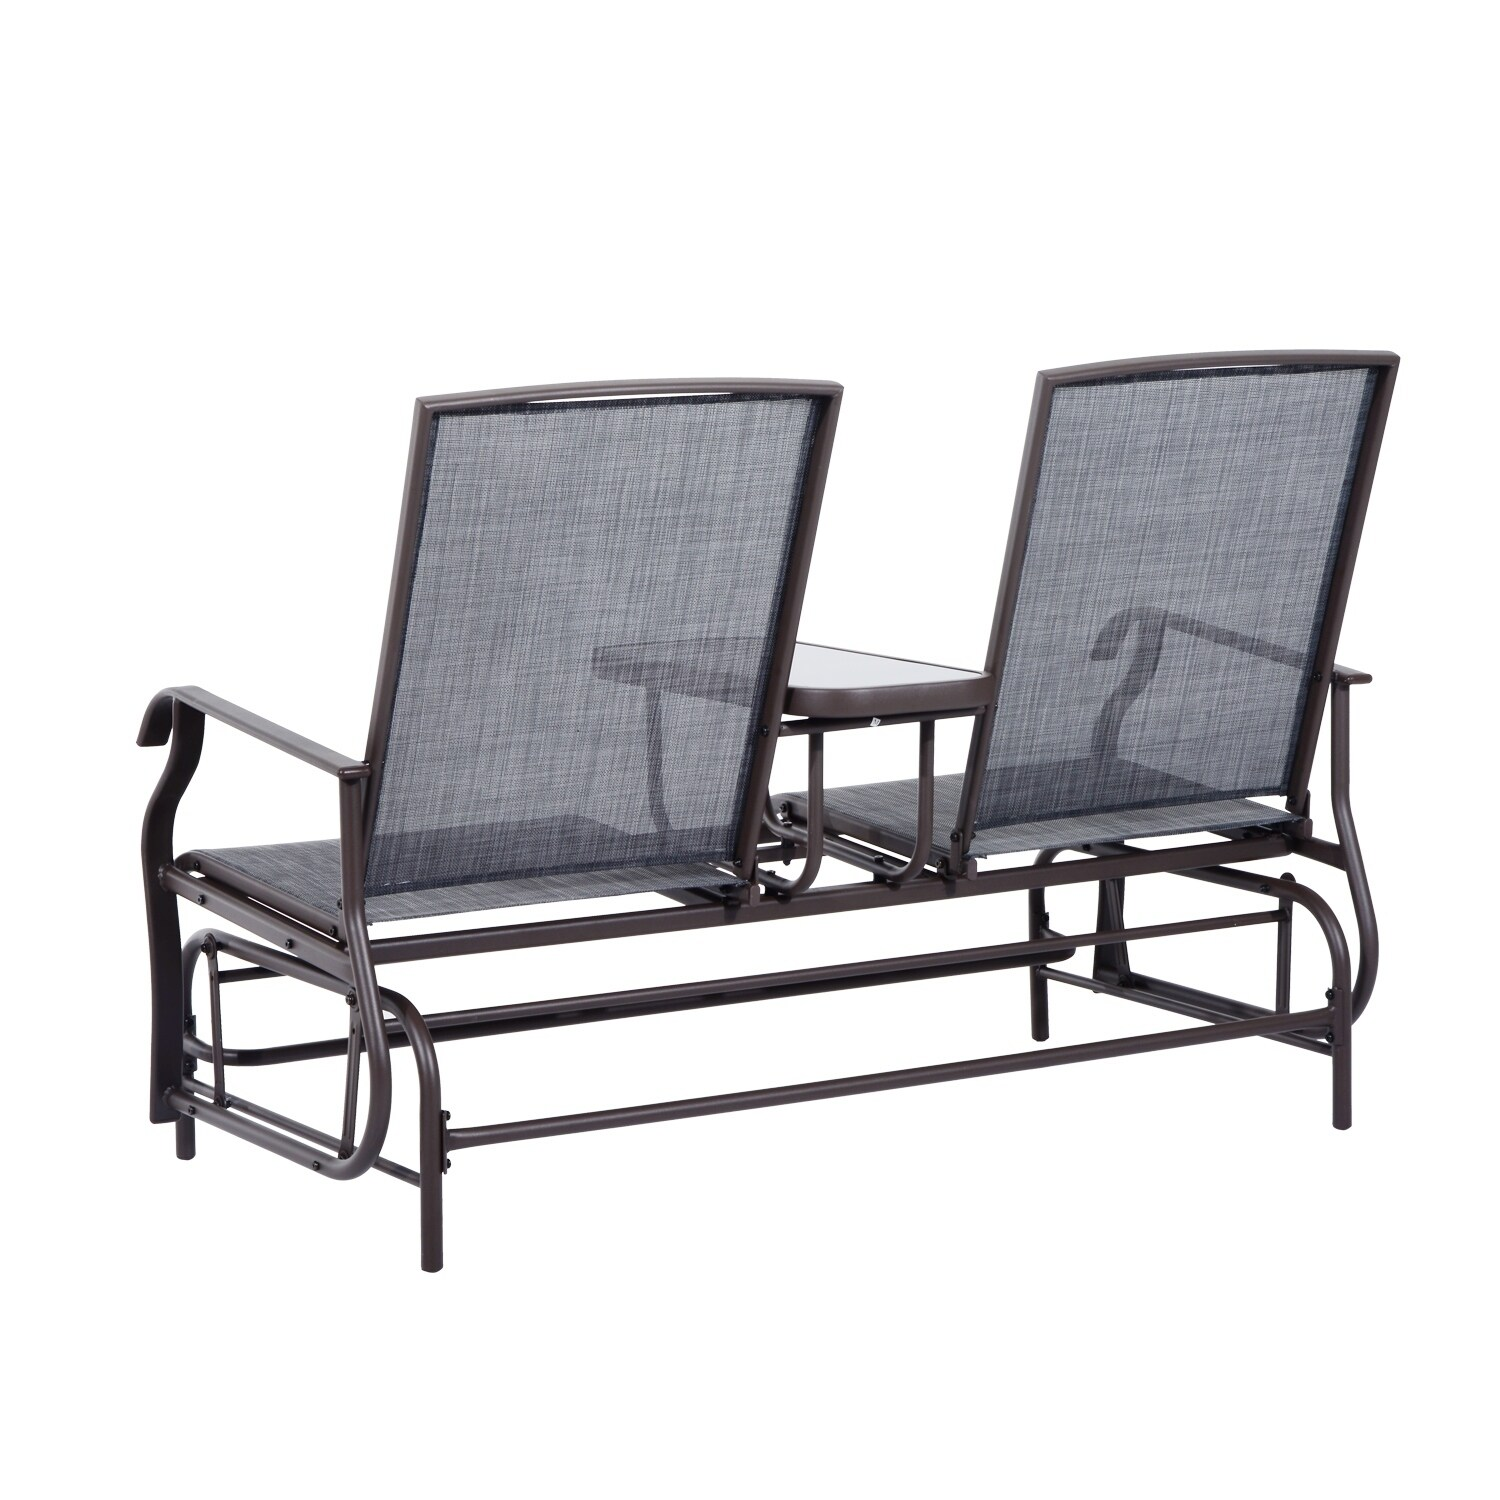 cheap glider chair hanging on grace and frankie shop outsunny two person outdoor mesh fabric patio double with center table free shipping today overstock com 18013207